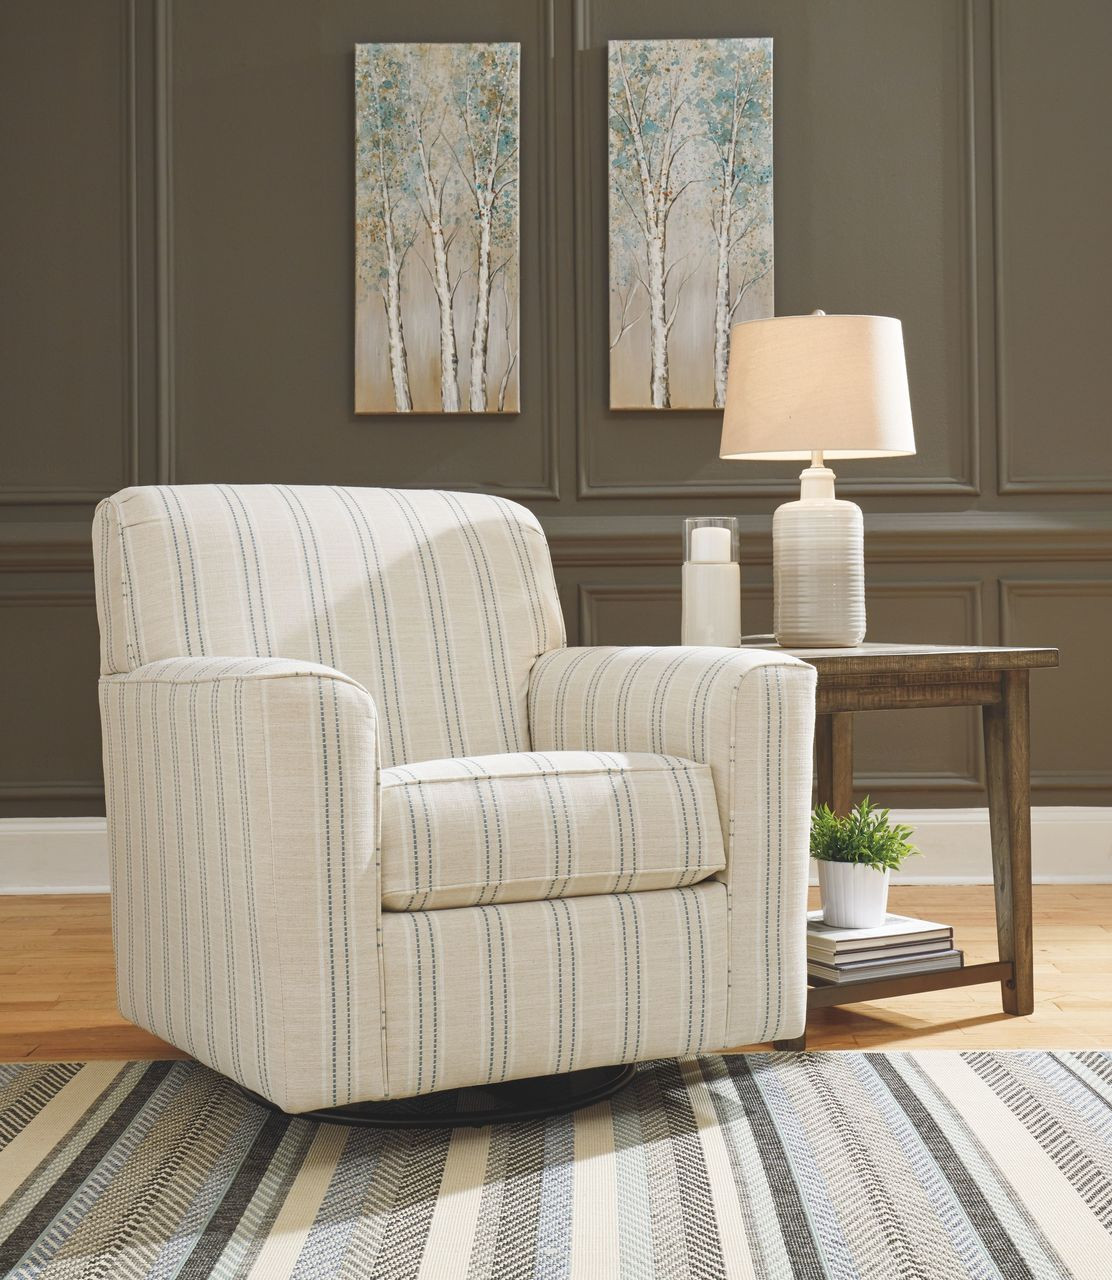 The Alandari Gray Swivel Glider Accent Chair Available At Jaxco Furniture Serving Jacksonville Fl And Surrounding Areas